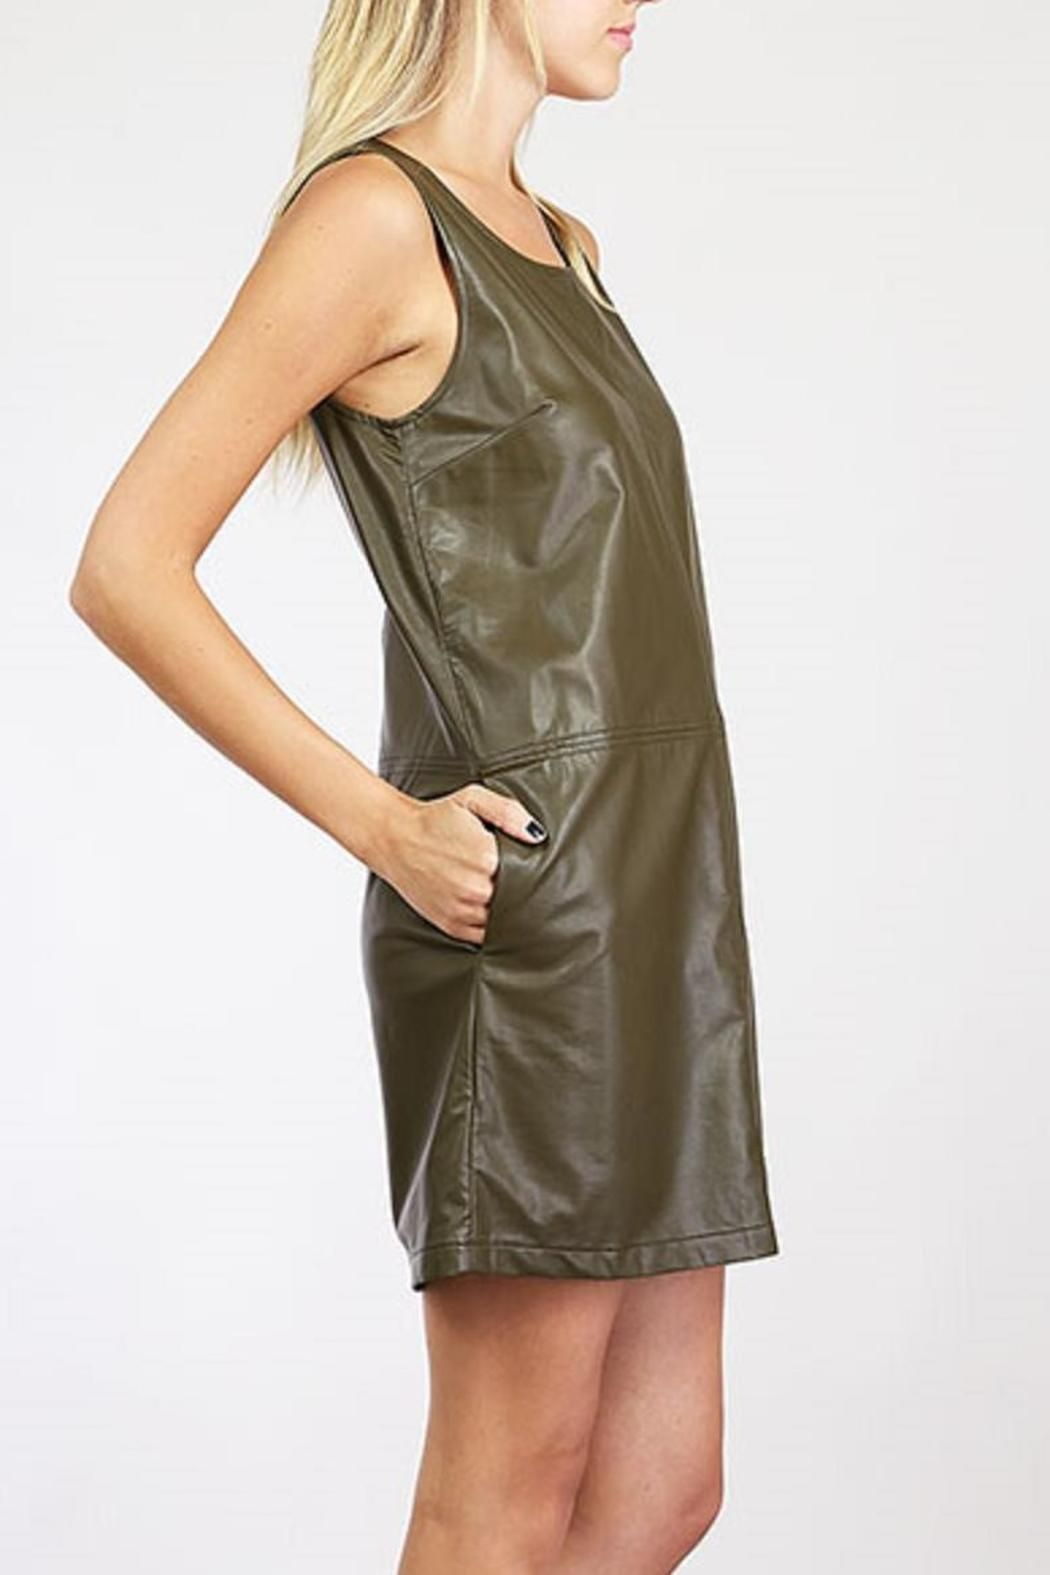 Vegan leather dress with contrast stitching and zipper up the back. Can be worn alone, or can be worn with a shirt layered underneath and a pair of leggings or tights. Fully lined.   Vegan Leather Dress by Amy's Allie . Clothing - Dresses - Casual Ohio